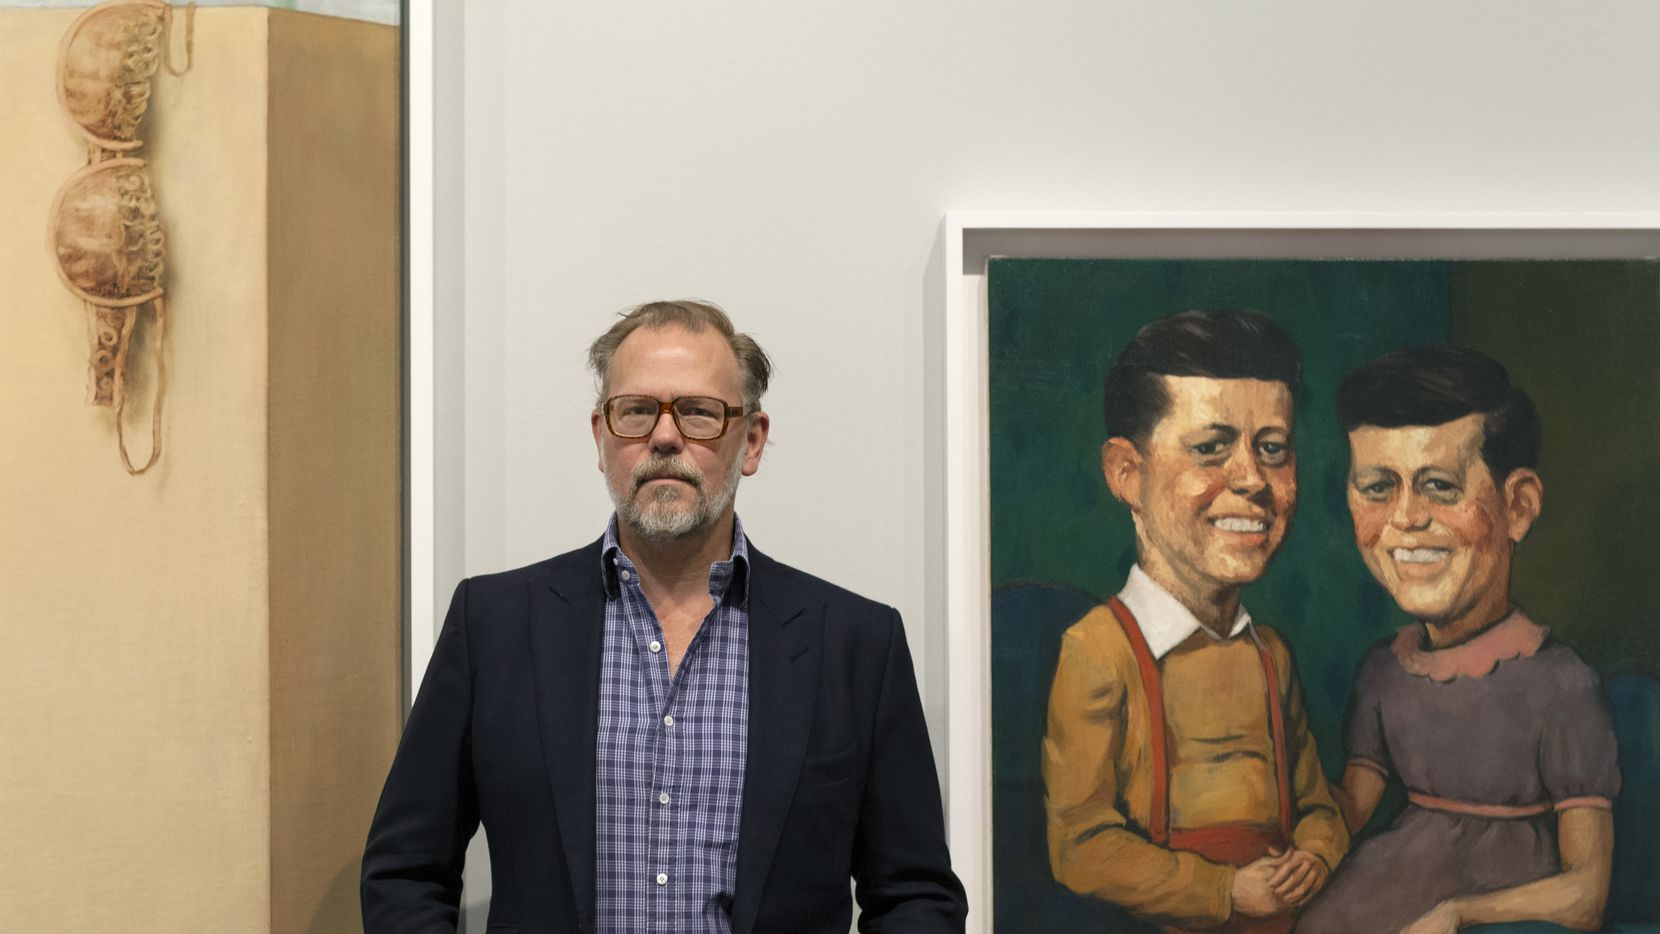 """Artist John Currin, photographed at his exhibition """"My Life as a Man"""" at the Dallas Contemporary. He is flanked by his works """"The Kennedys"""", with two images of John F. Kennedy (right), and a detail of """"The Dream of the Doctor"""" (left)."""